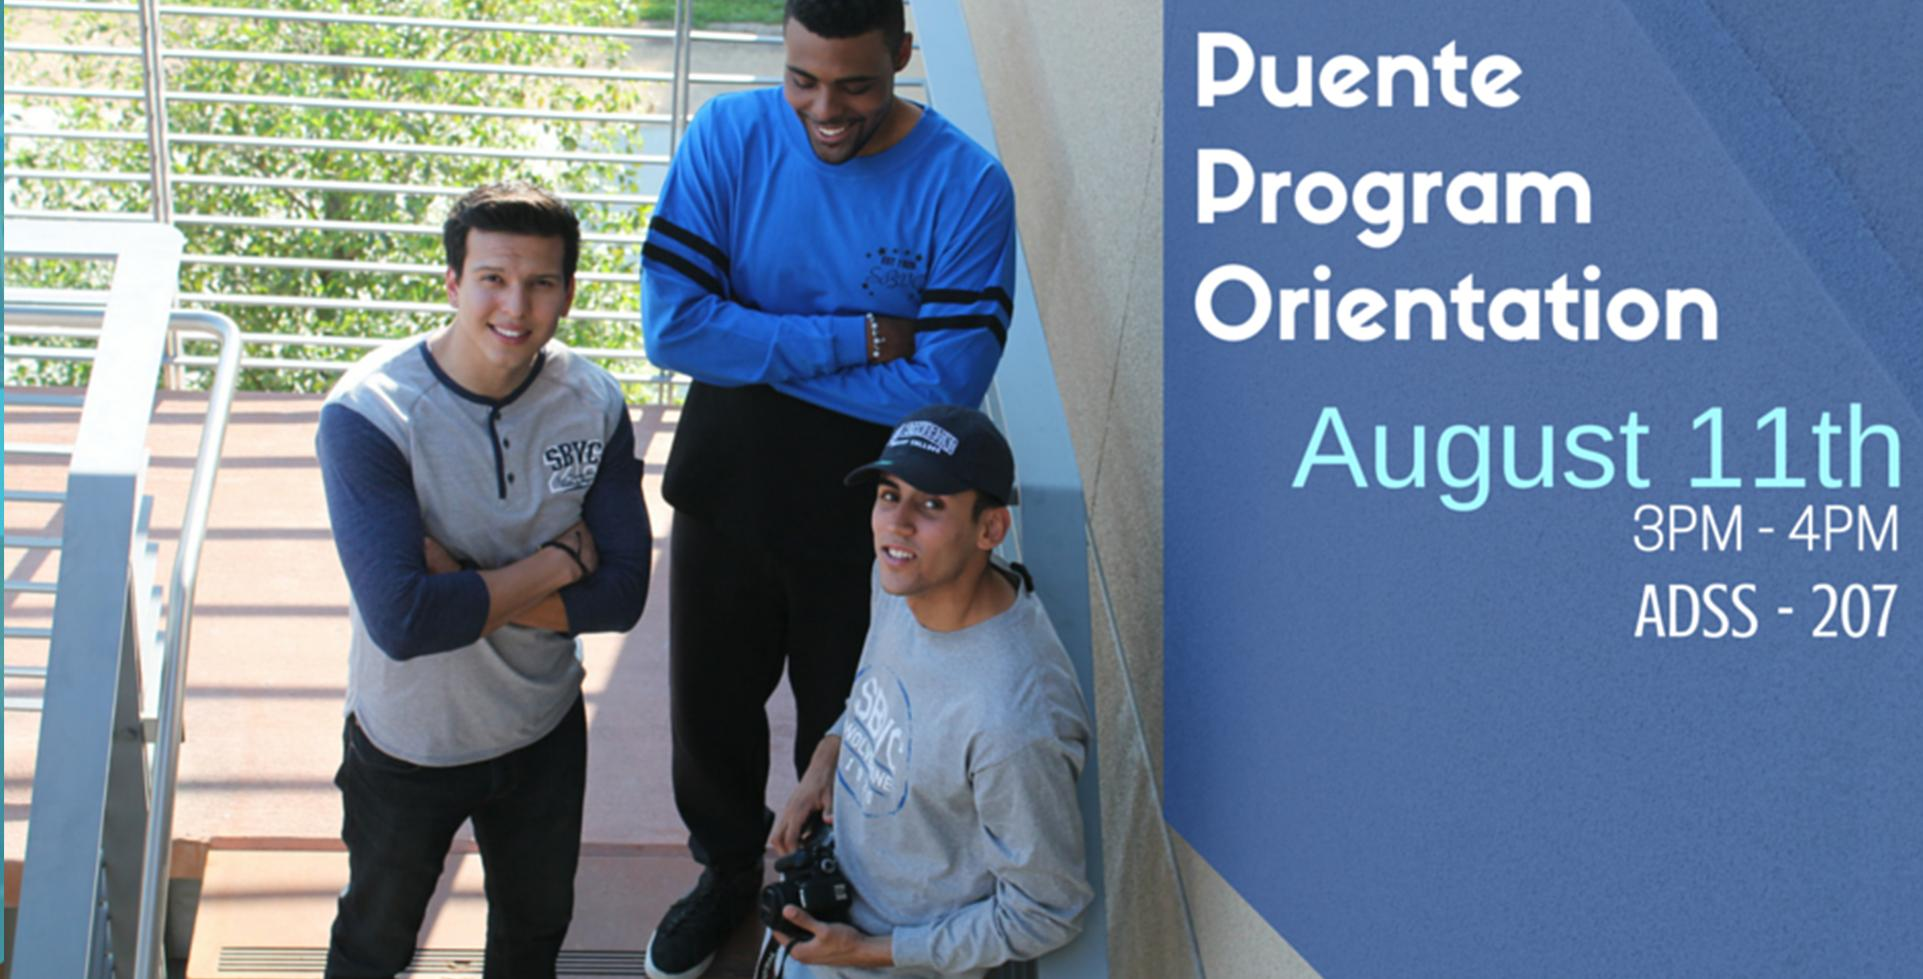 August 11 > Puente Program Orientation